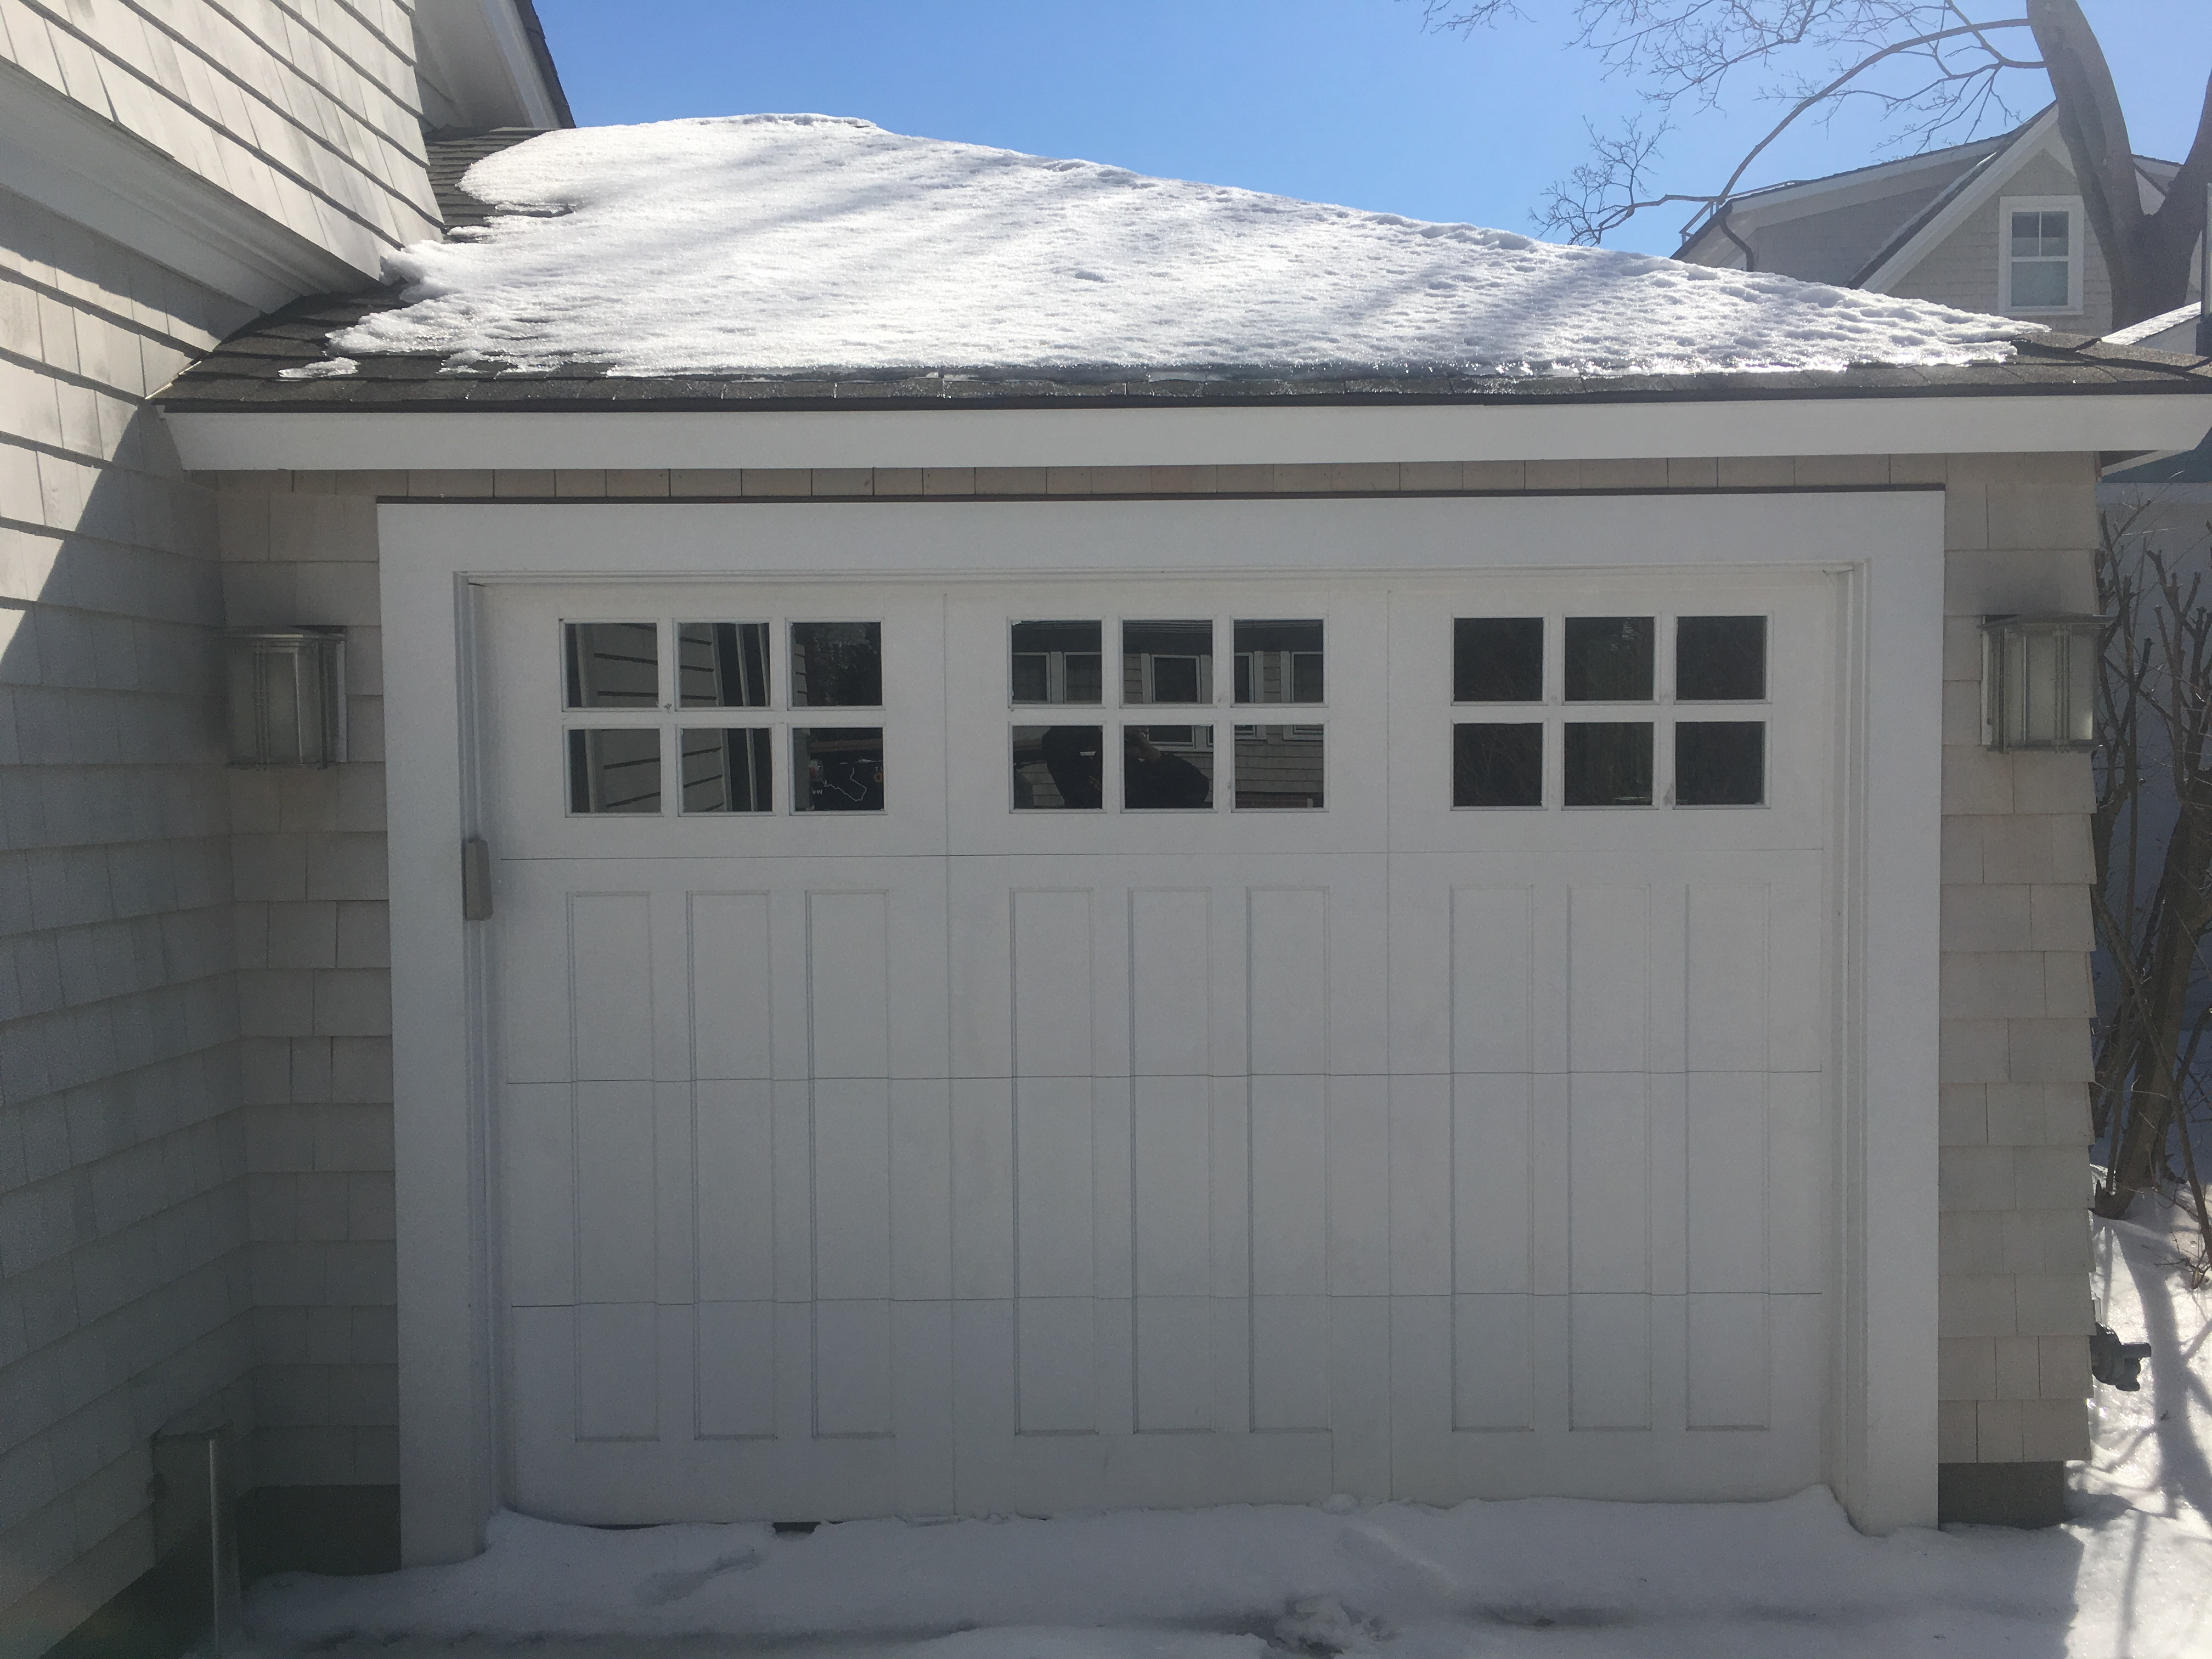 ga packages style for windows in with door tax nc x hickory retails garages walk regular garage north eastern